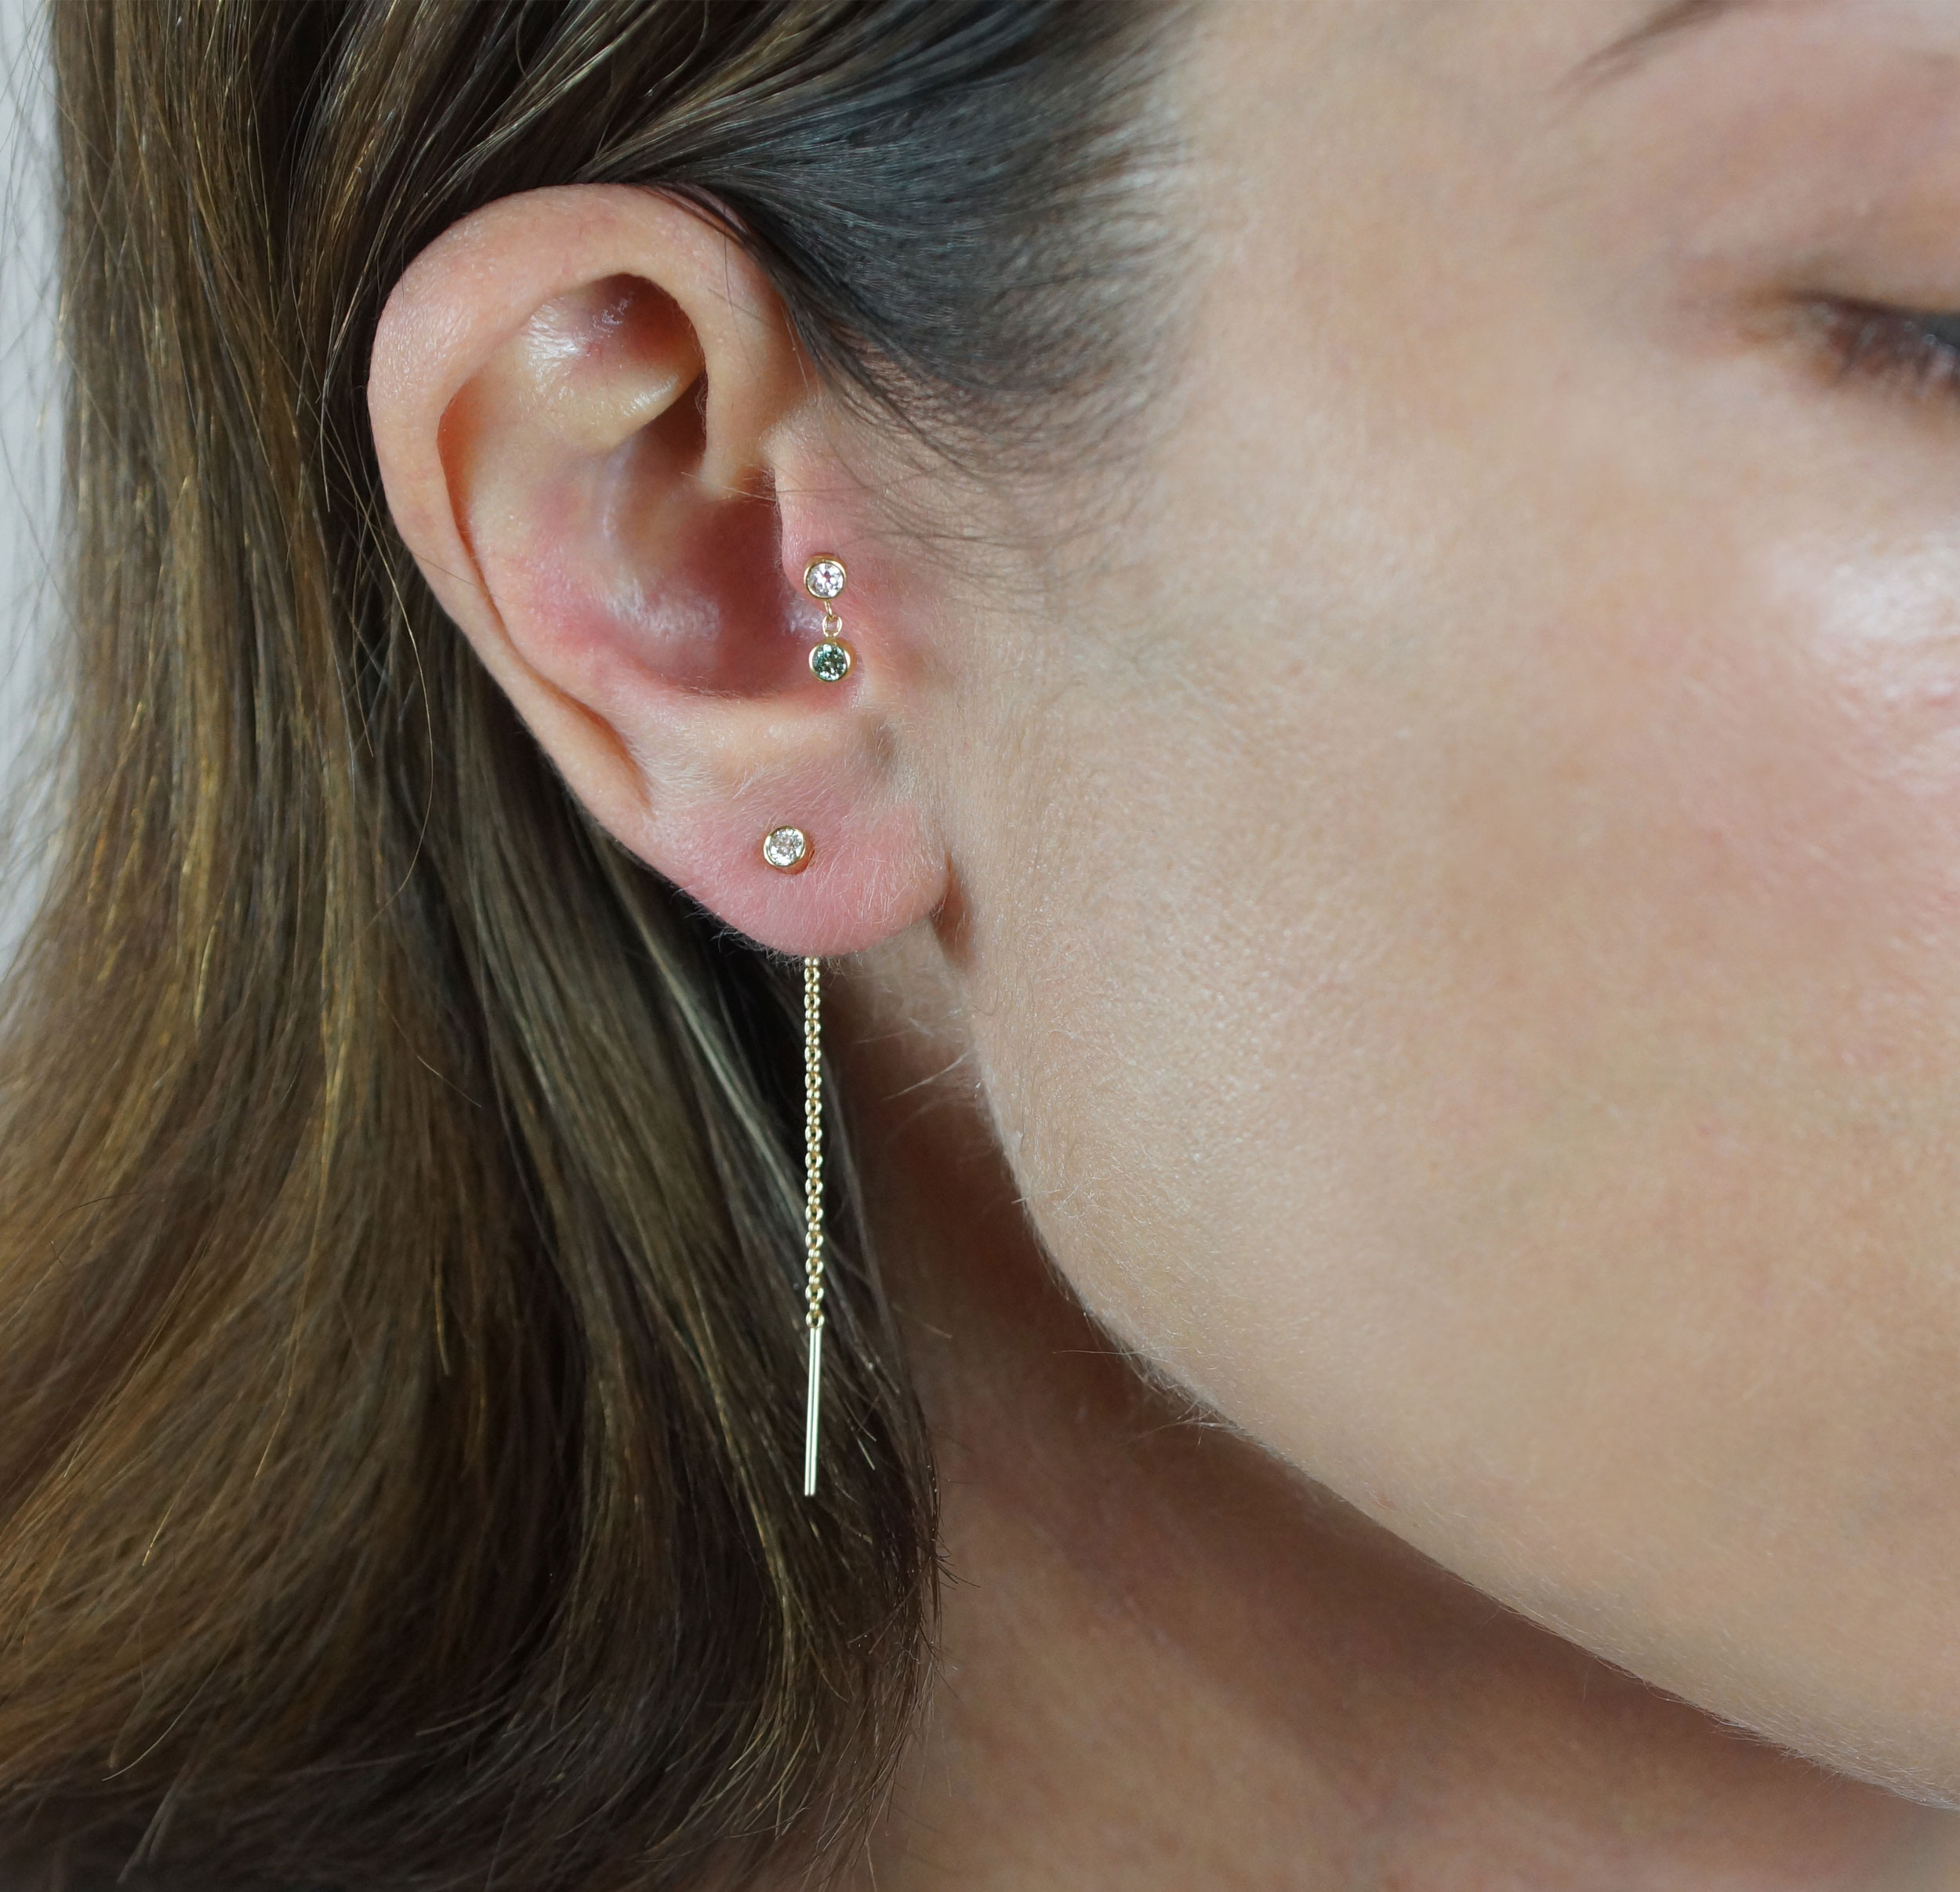 Ear Styling by Lena Cohen Fine Jewellery Buy 18k gold luxury piercings for #tragus, #helix, #daith, #cartilage, #earlobe. Made in London. Free shipping on all orders!